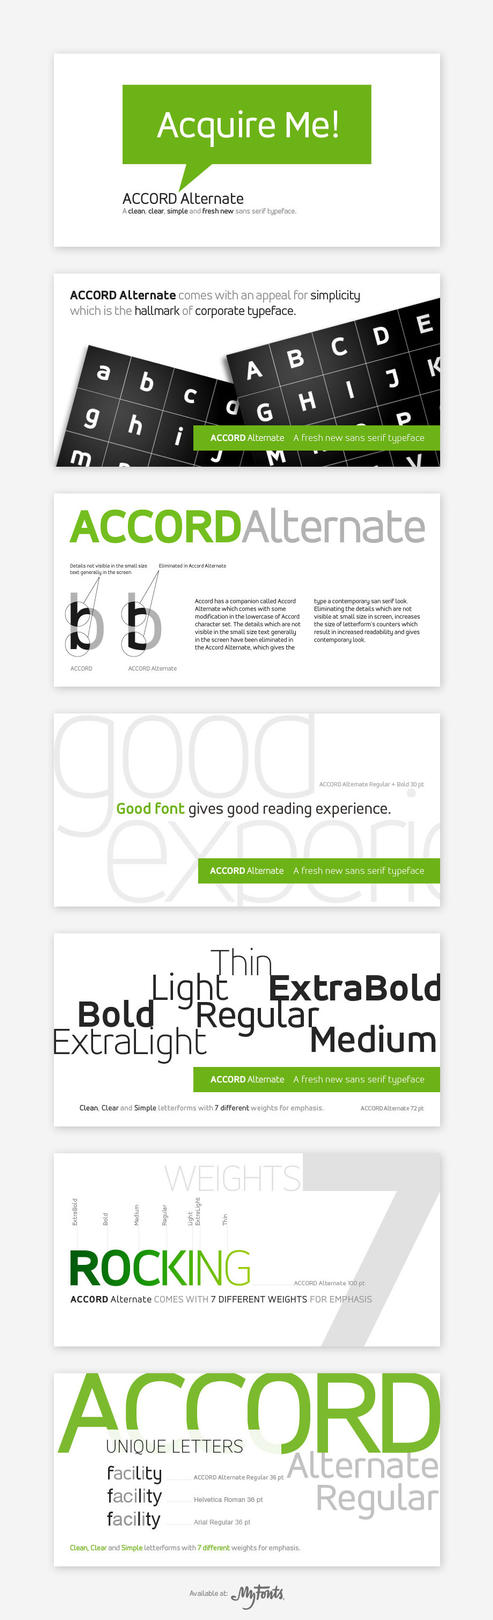 Accord Alternate Font Family by akkasone